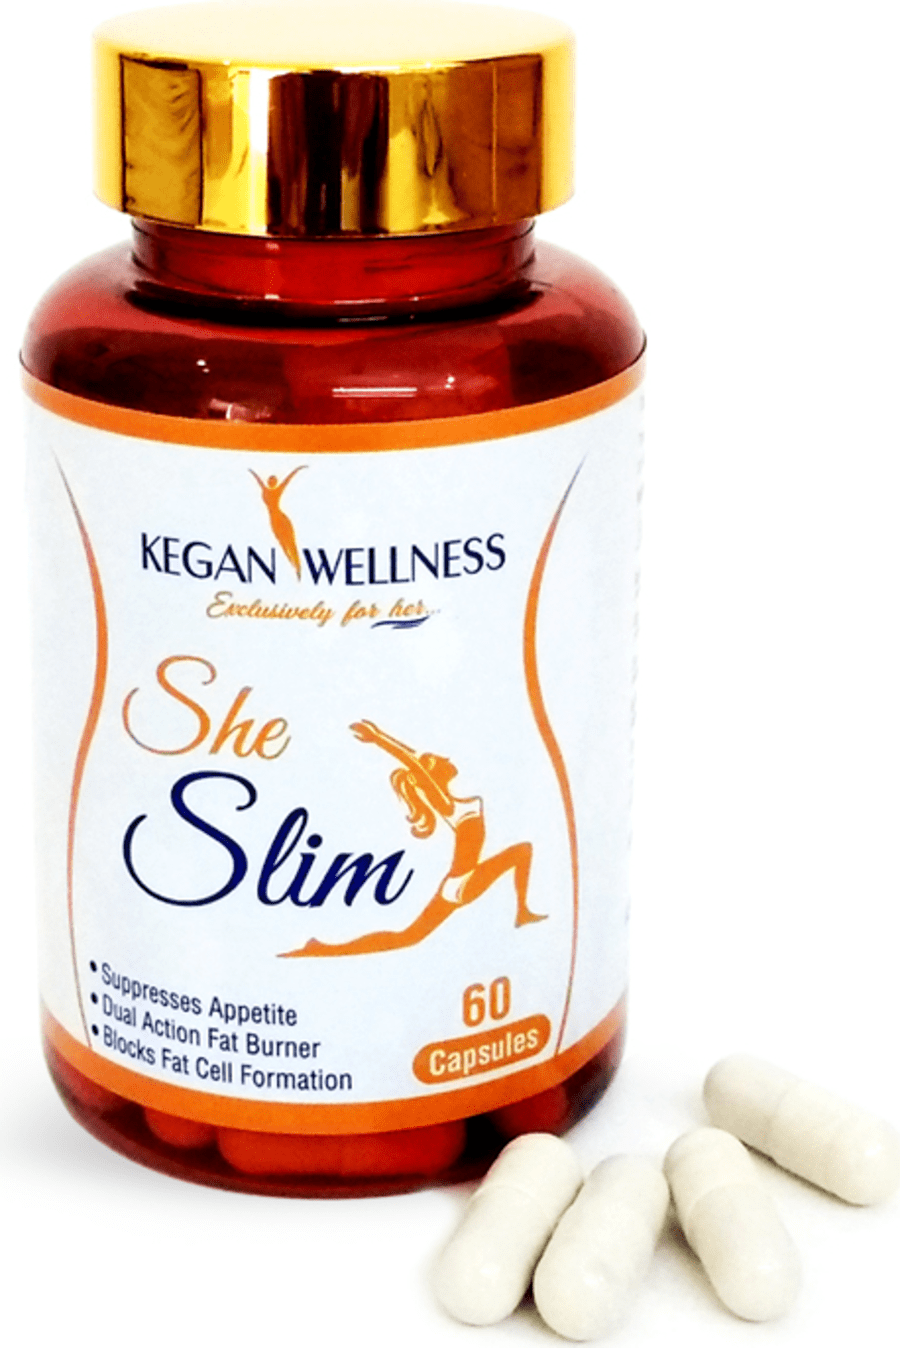 Kegan Wellness Sheslim-slimming Supplements 60's